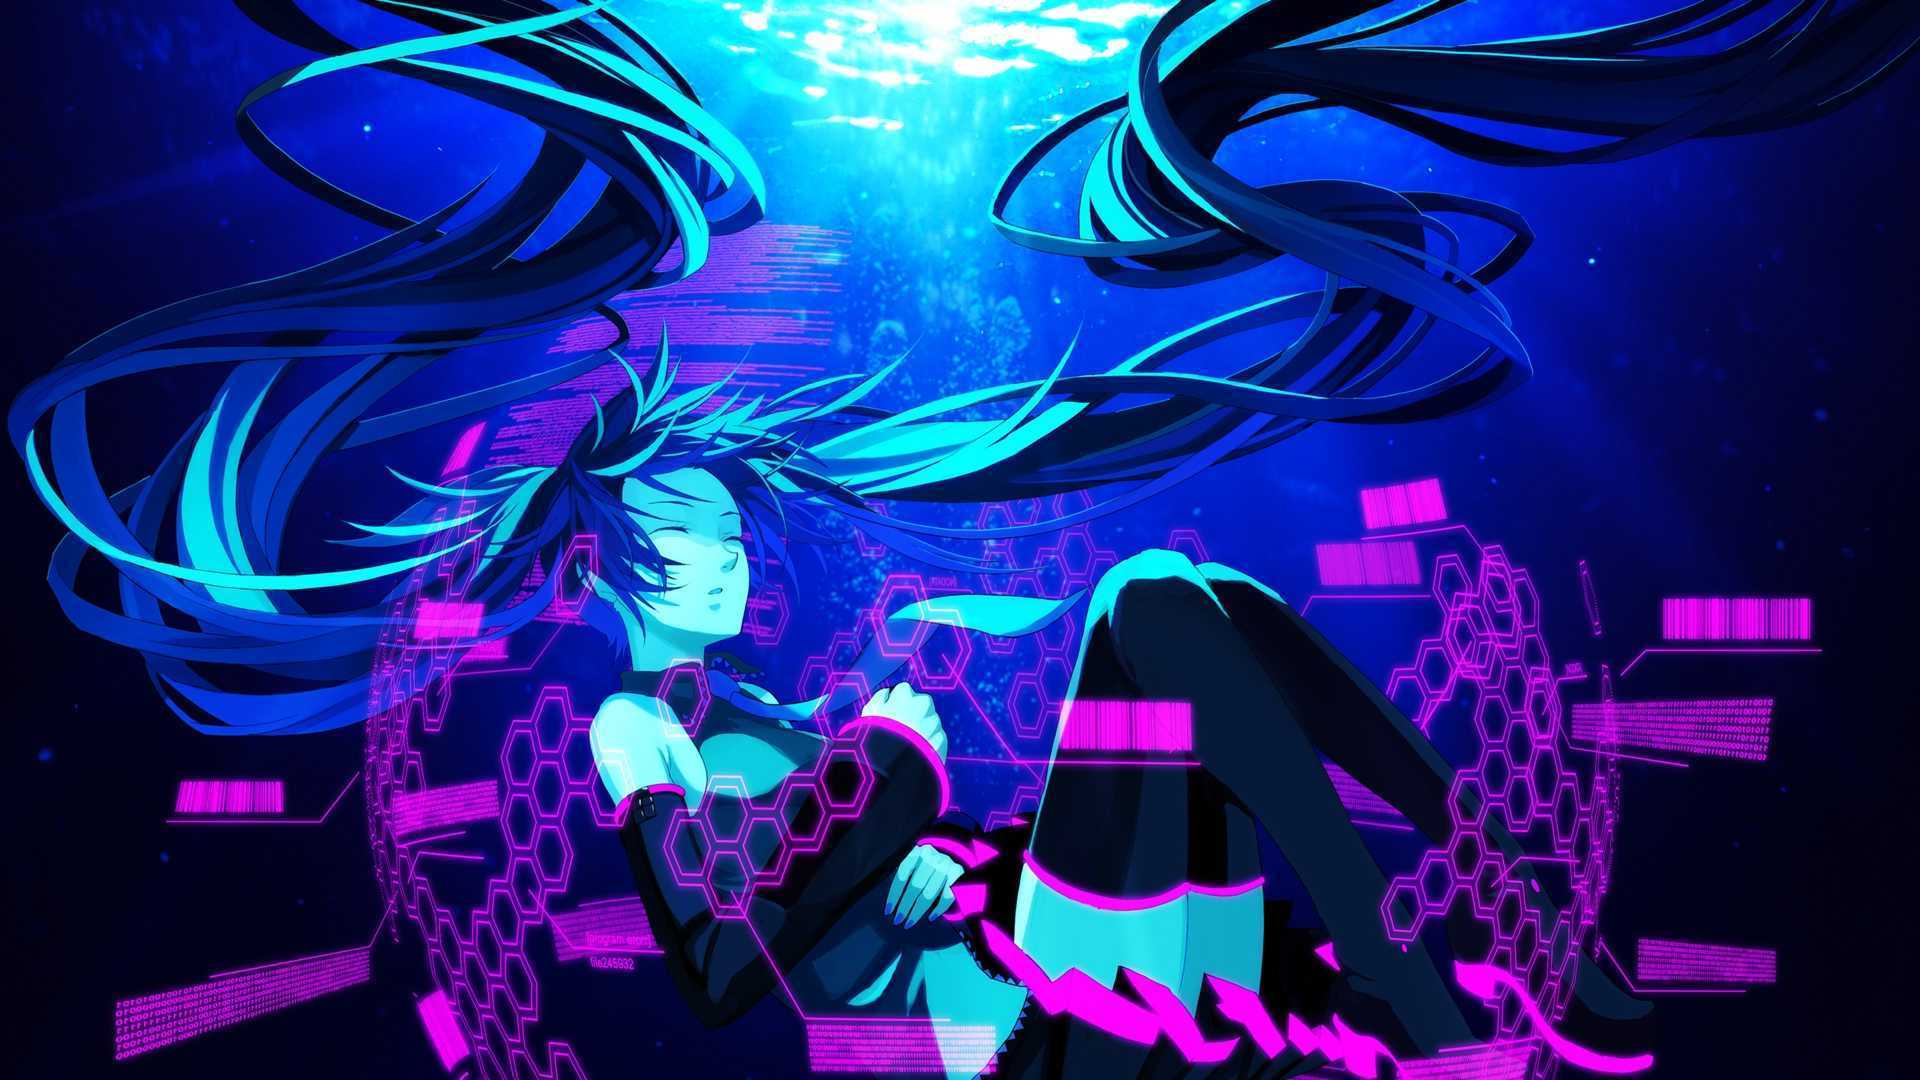 Vocaloid Hd Wallpaper And Image Wallpaper Hd Background